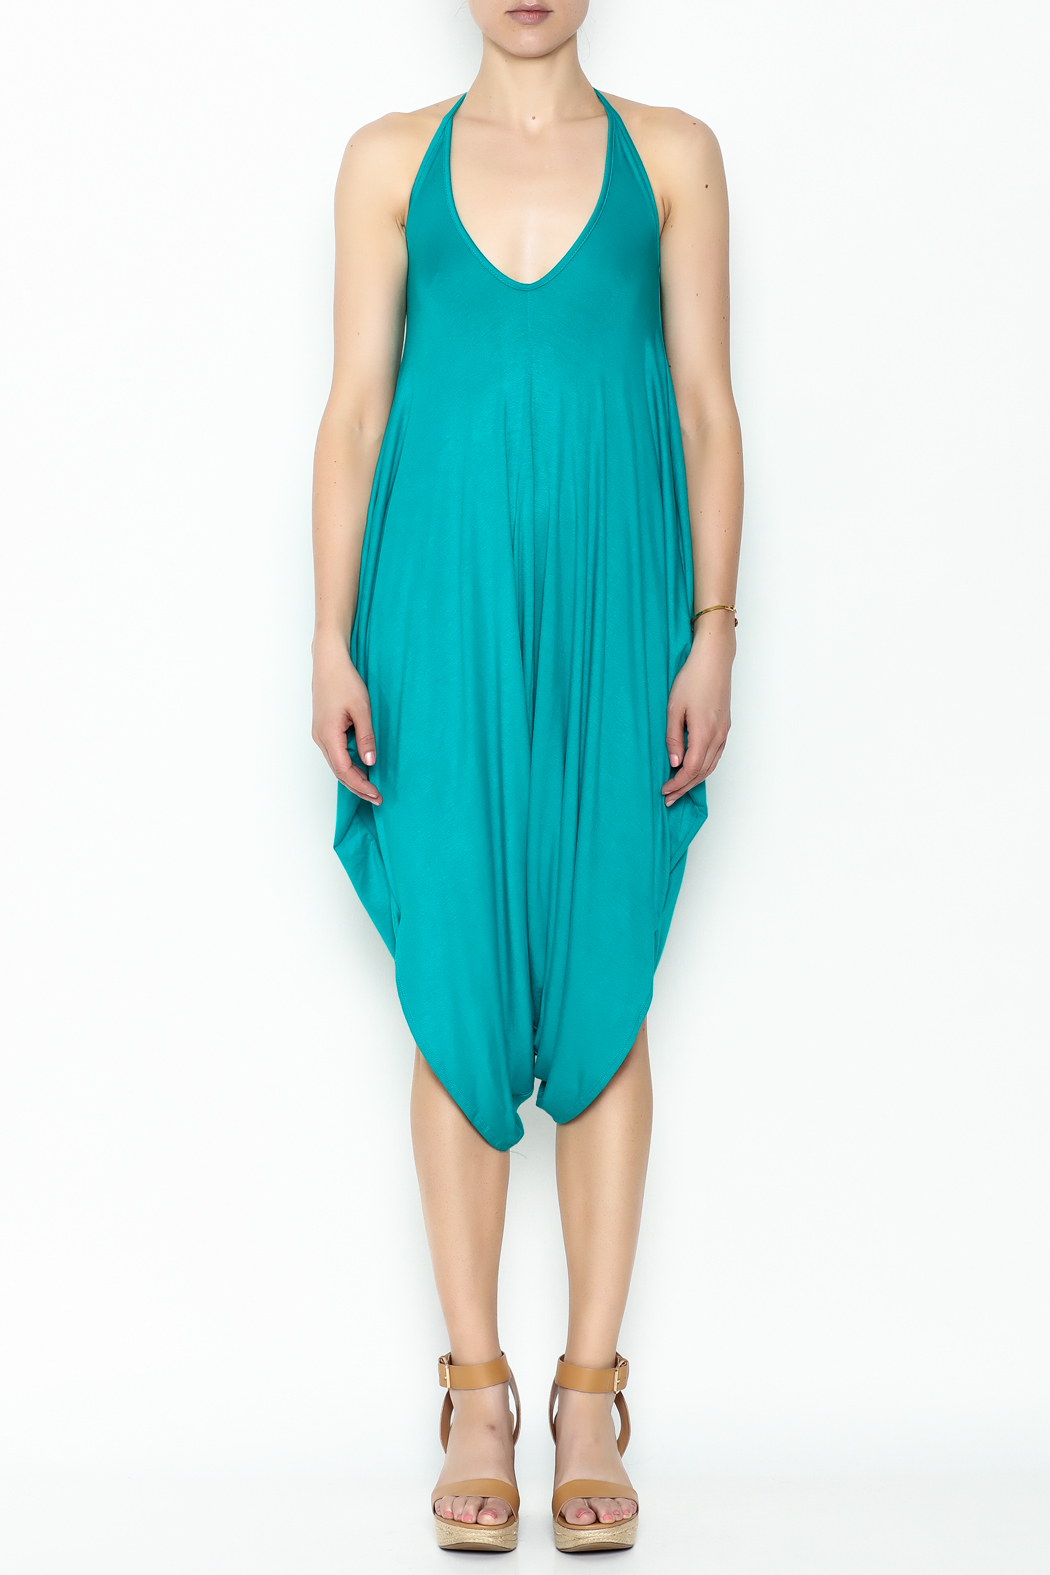 Sweet Candy Turquoise V Neck Jumpsuit - Front Full Image